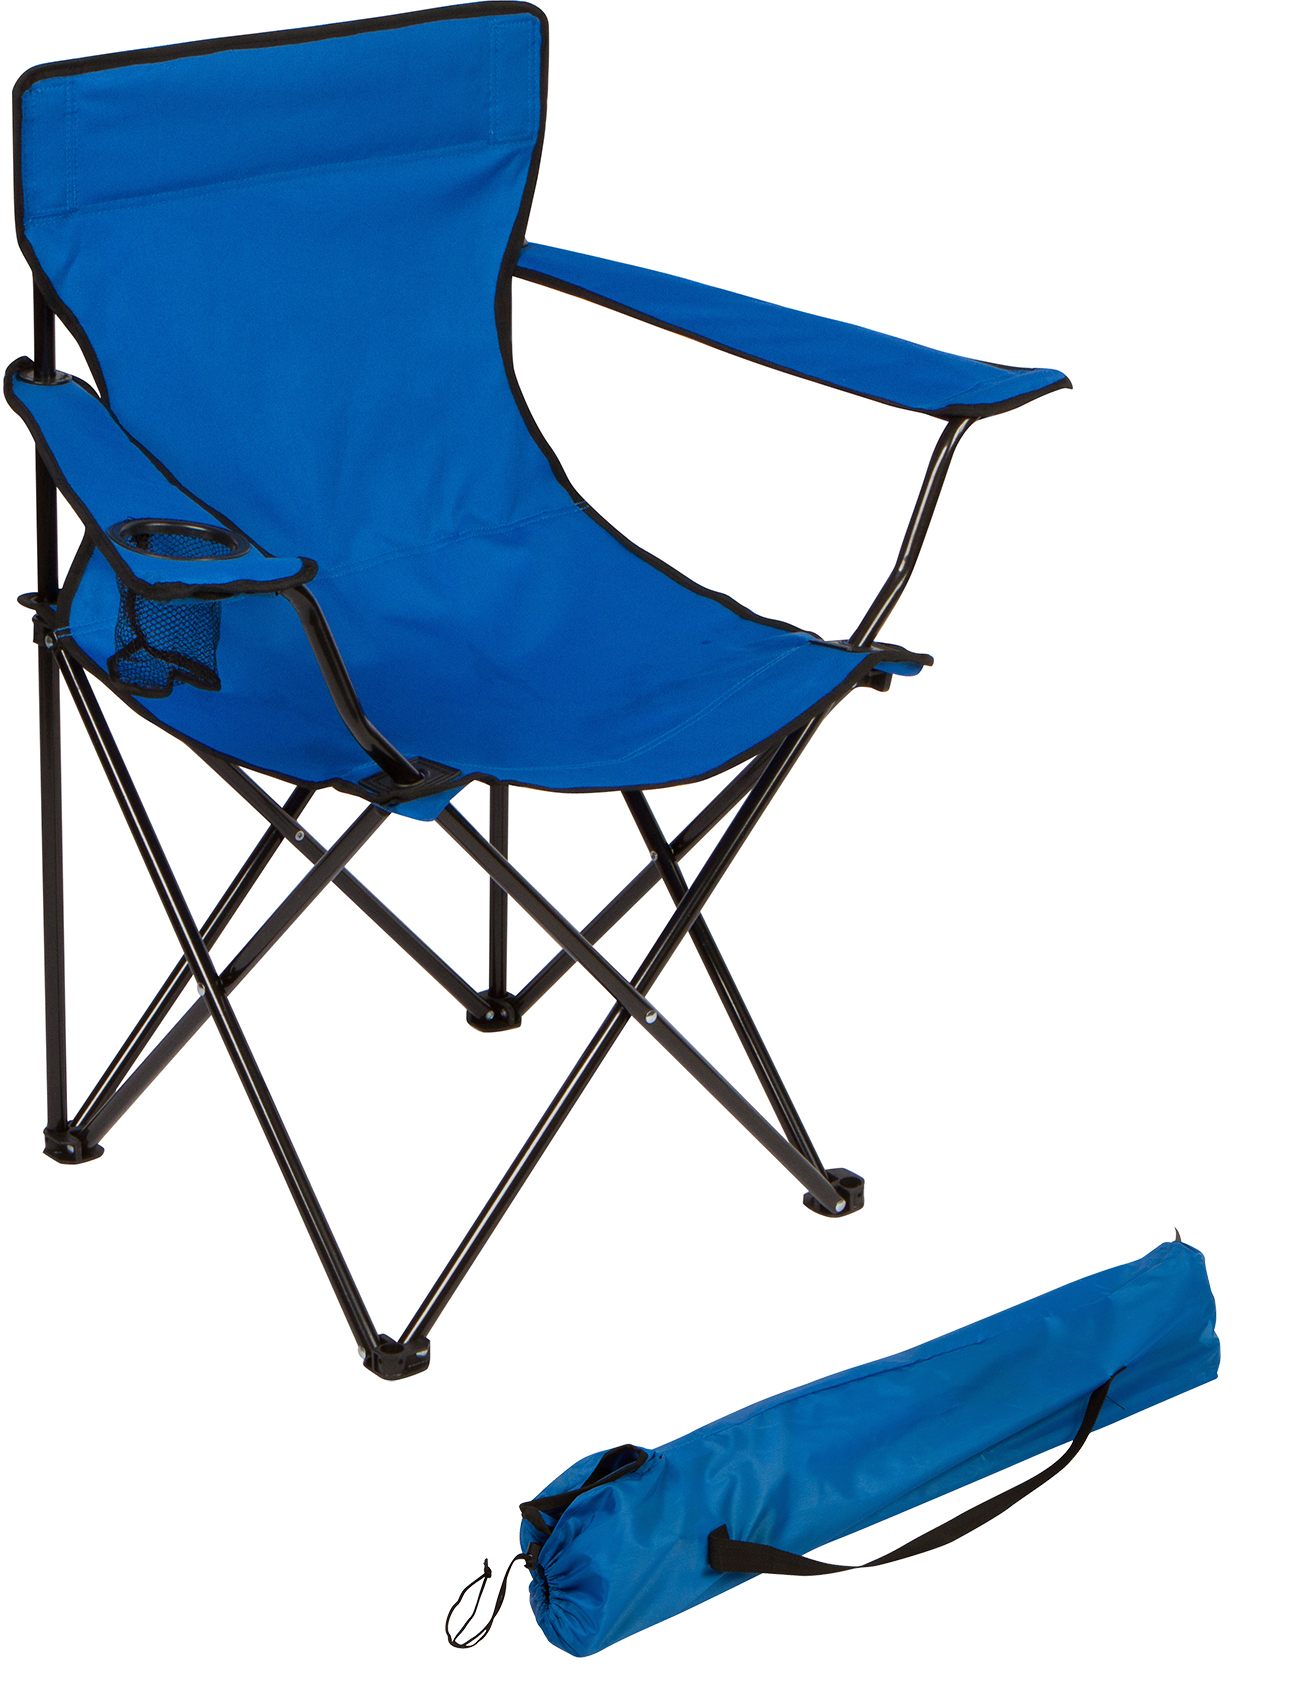 portable folding chairs hanging ceiling chair camp by trademark innovations blue walmart com